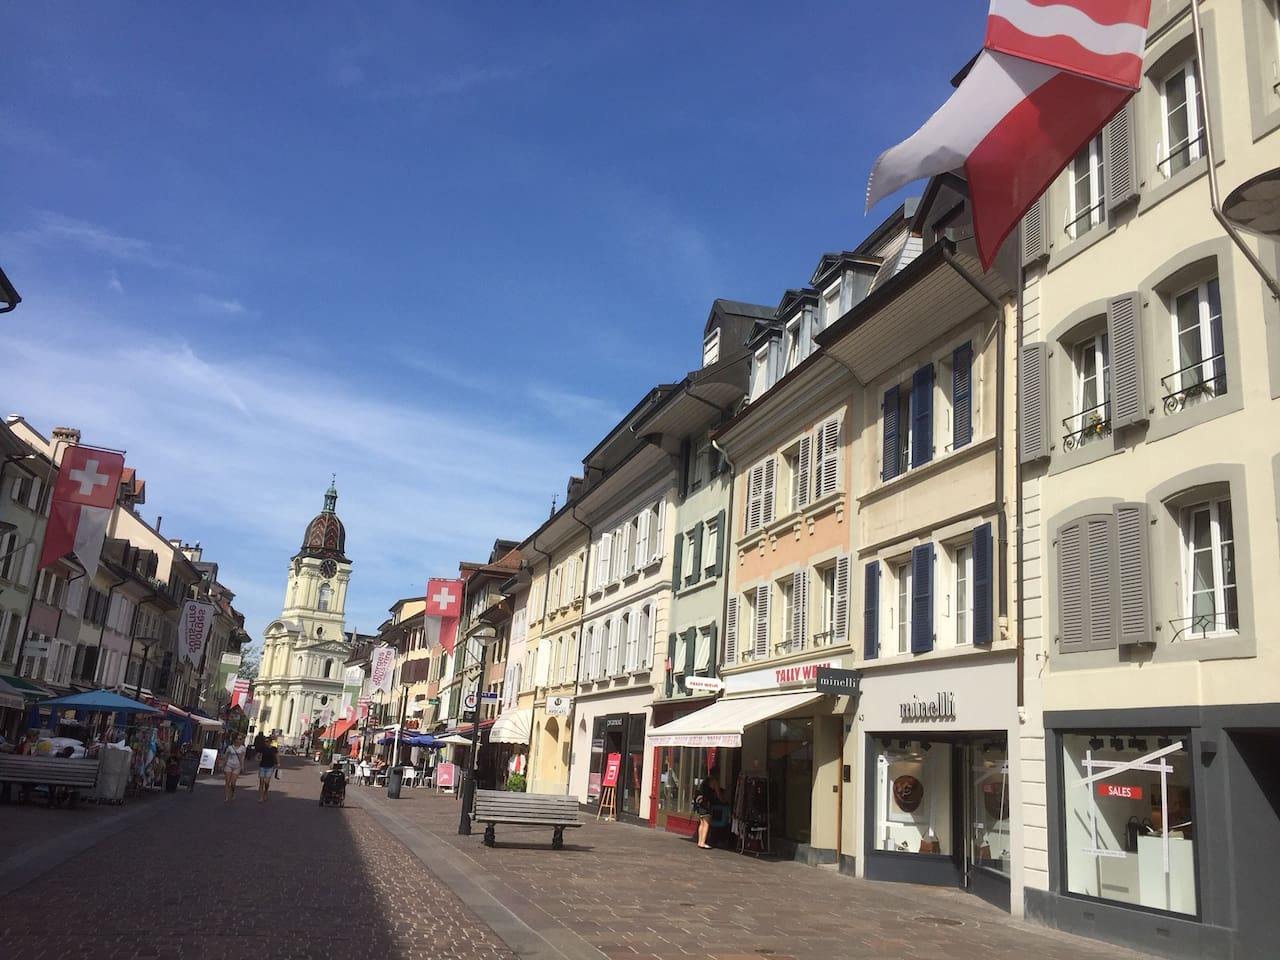 In the heart of Morges